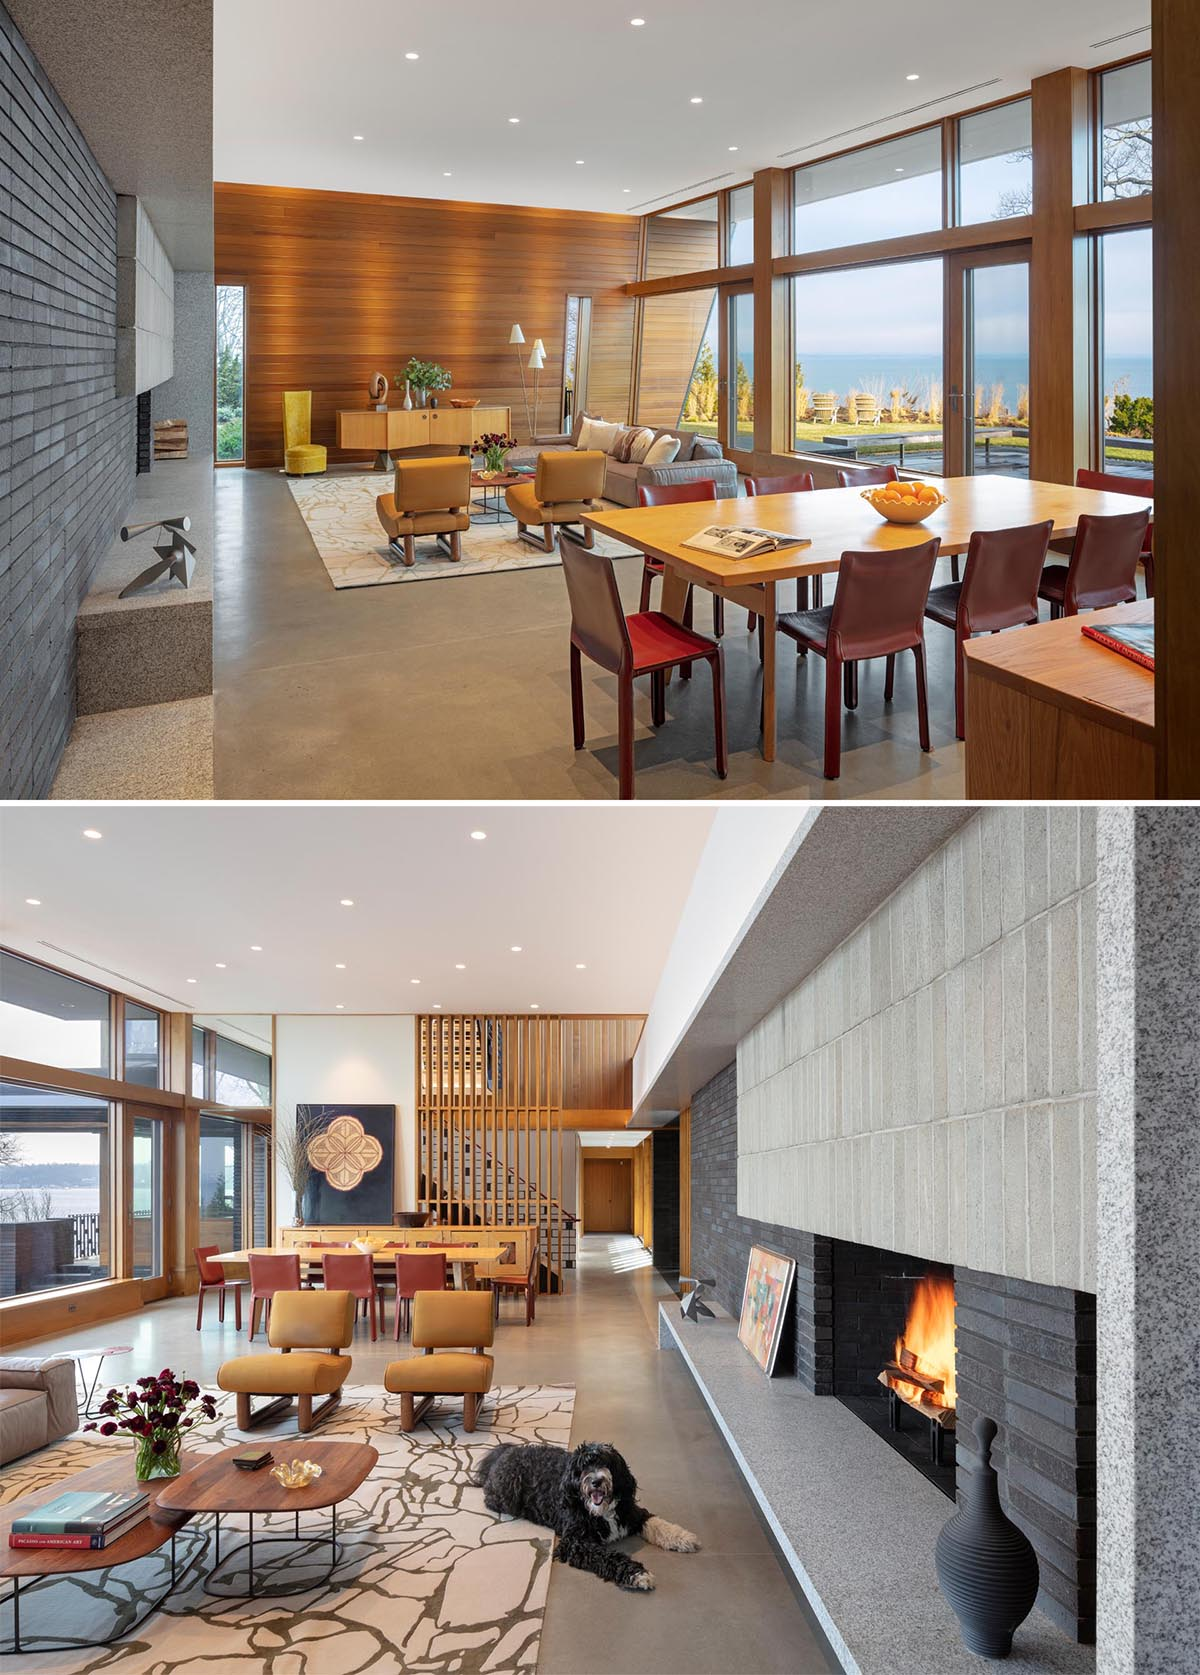 The interior of this modern home includes warm cedar wood walls, concrete floors, and stone elements.